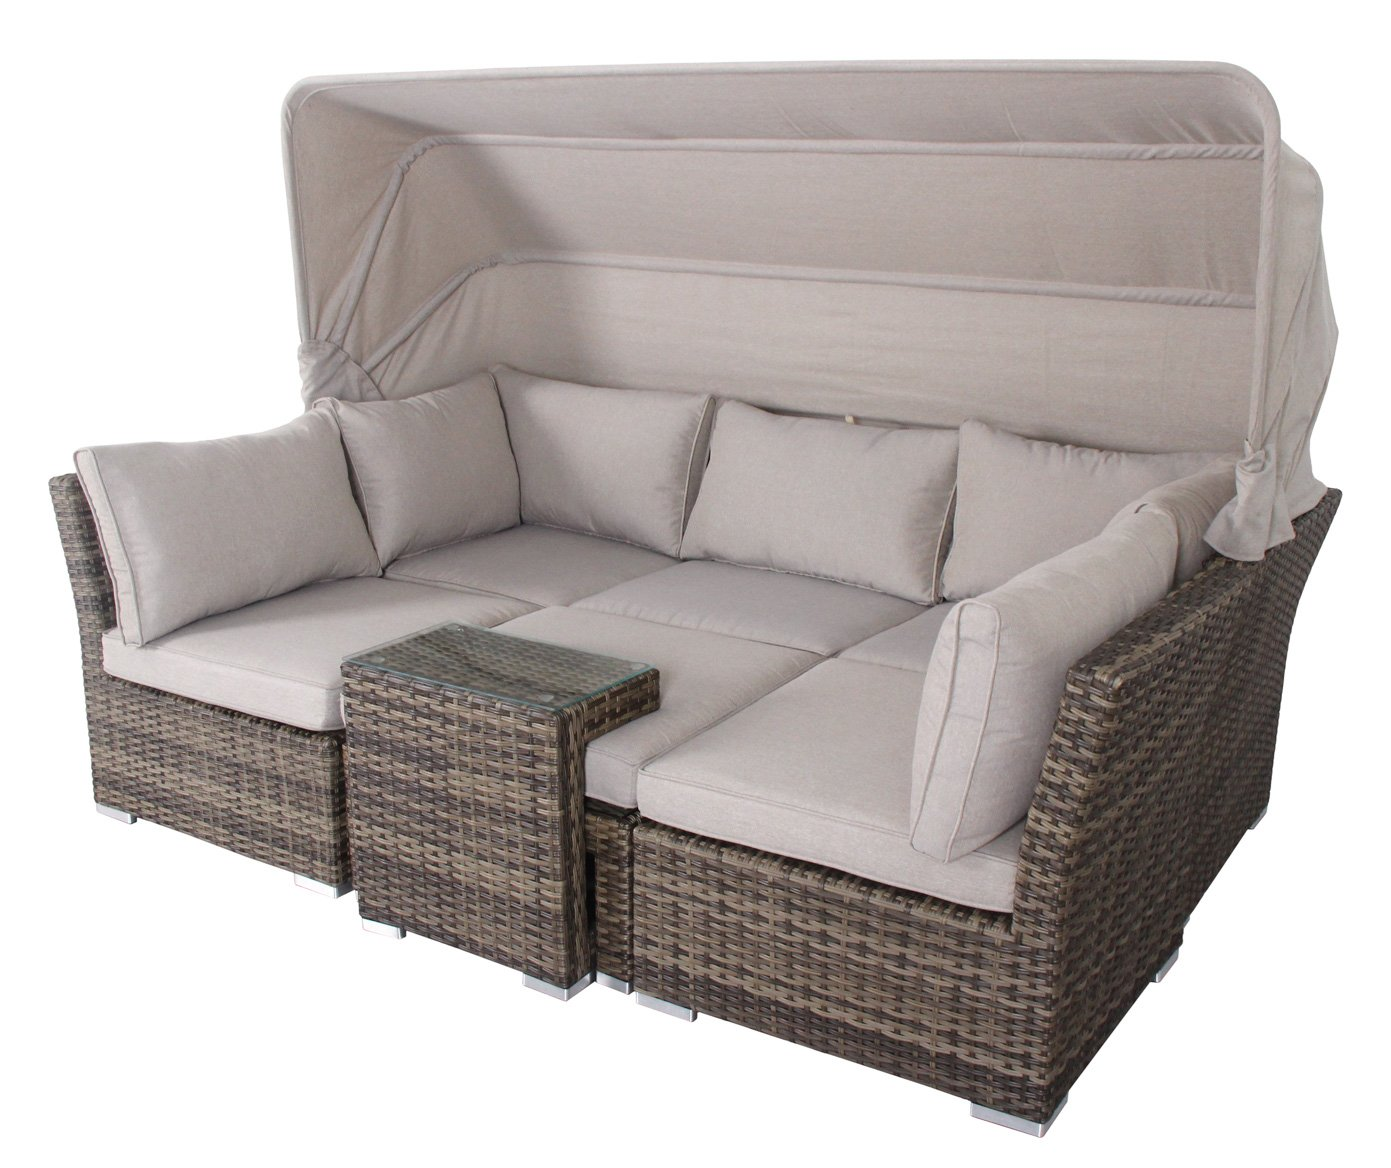 gartenbank rattan fabulous gartenbank aluminium rattan. Black Bedroom Furniture Sets. Home Design Ideas